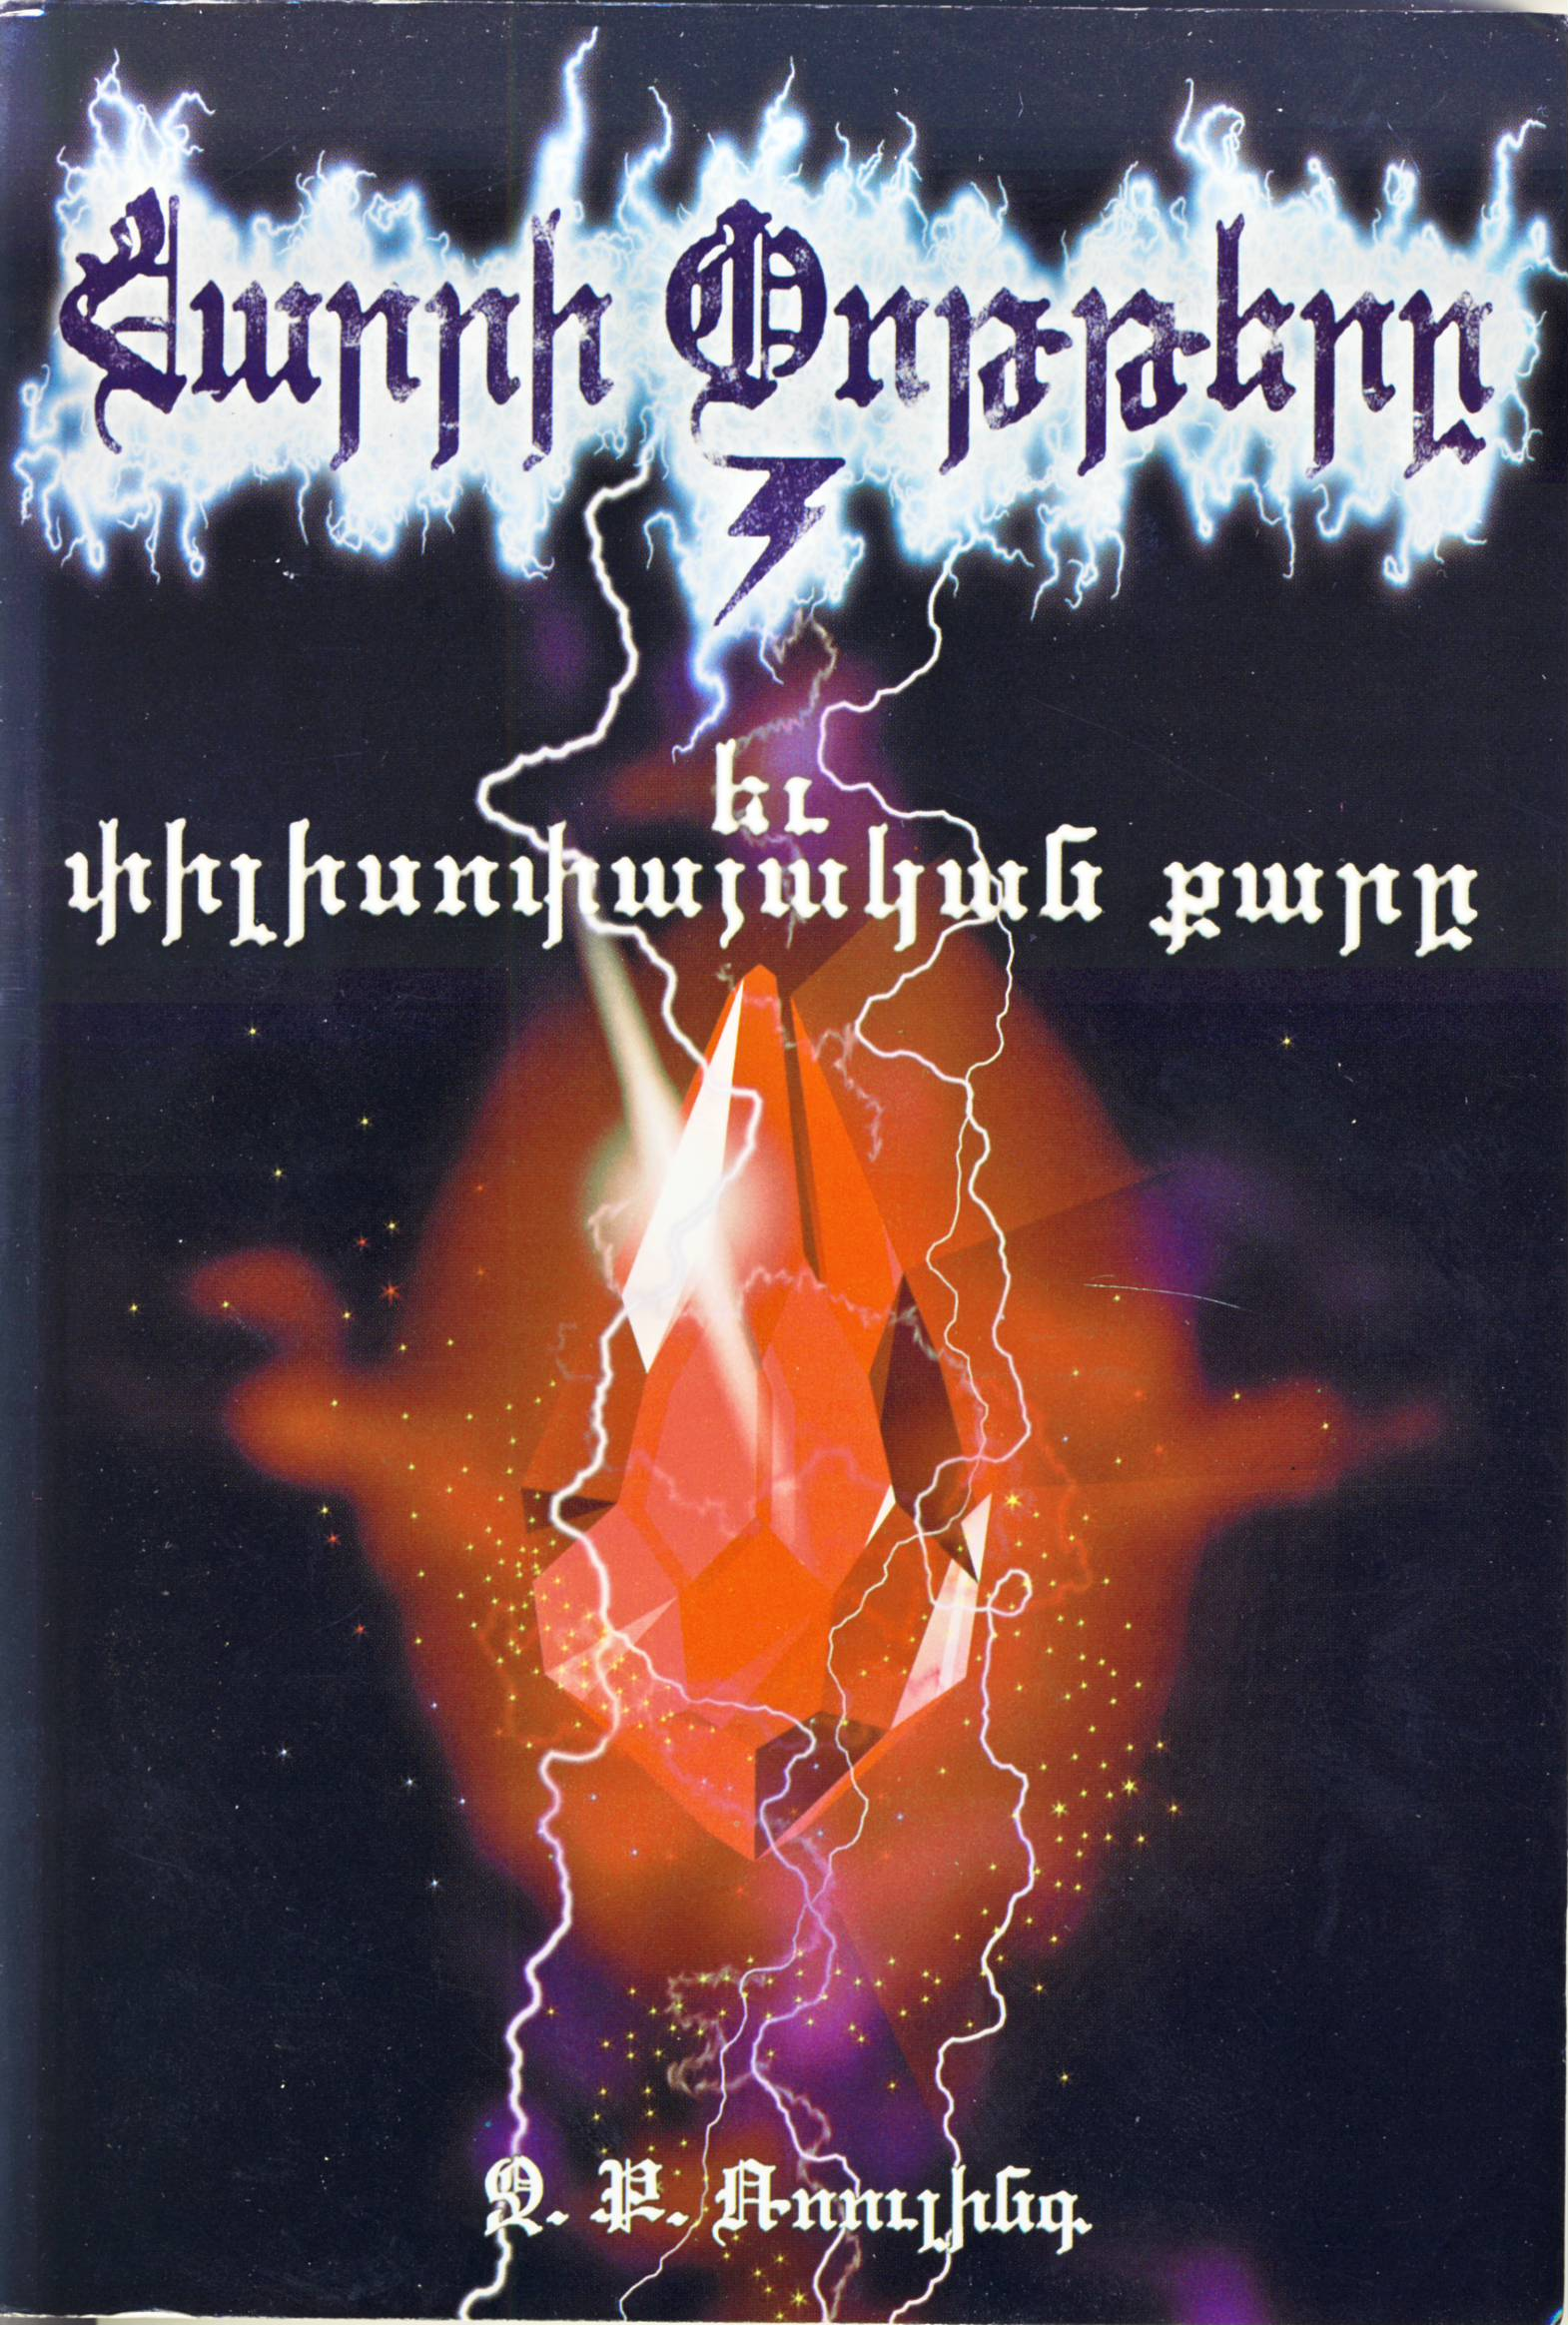 PS-Cover HY Unauthorized.jpg